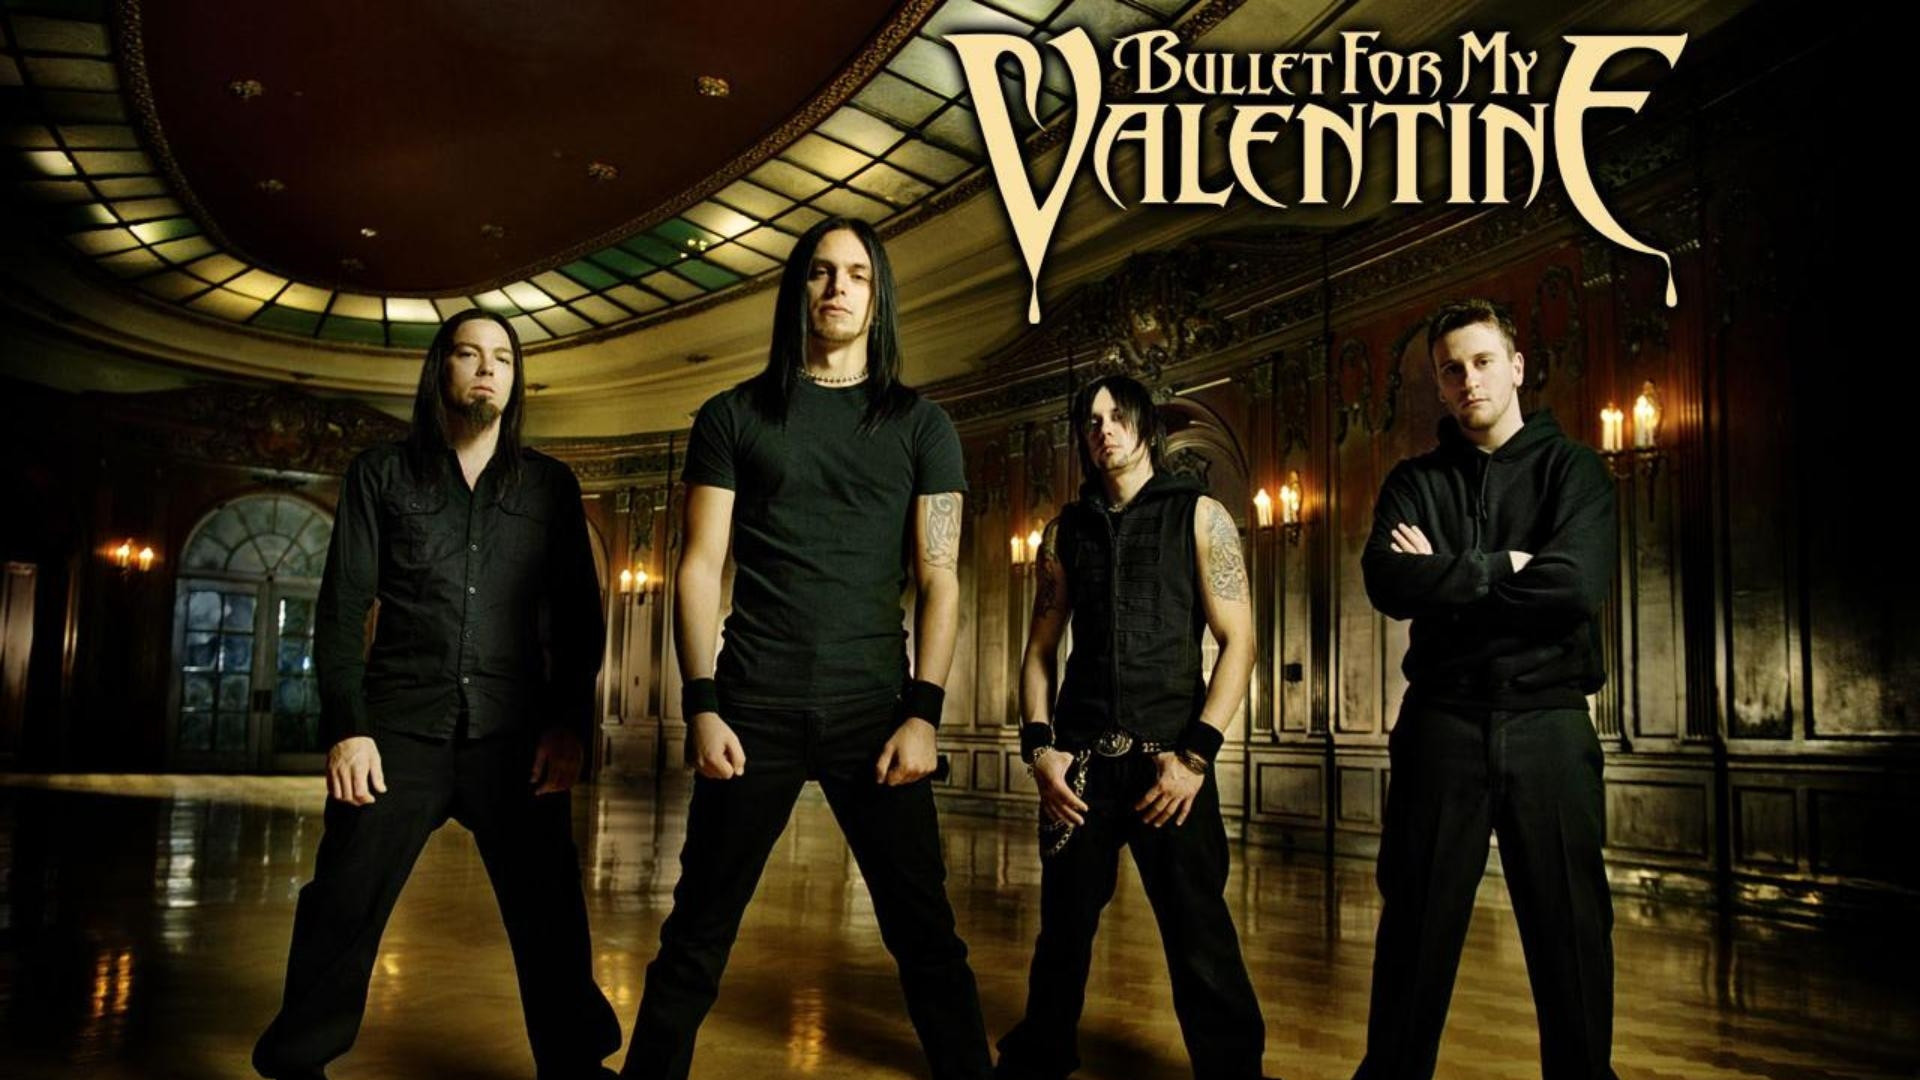 1920x1080 Preview Wallpaper Bullet For My Valentine, Band, Members, Hall,  Rockers 1920x1080